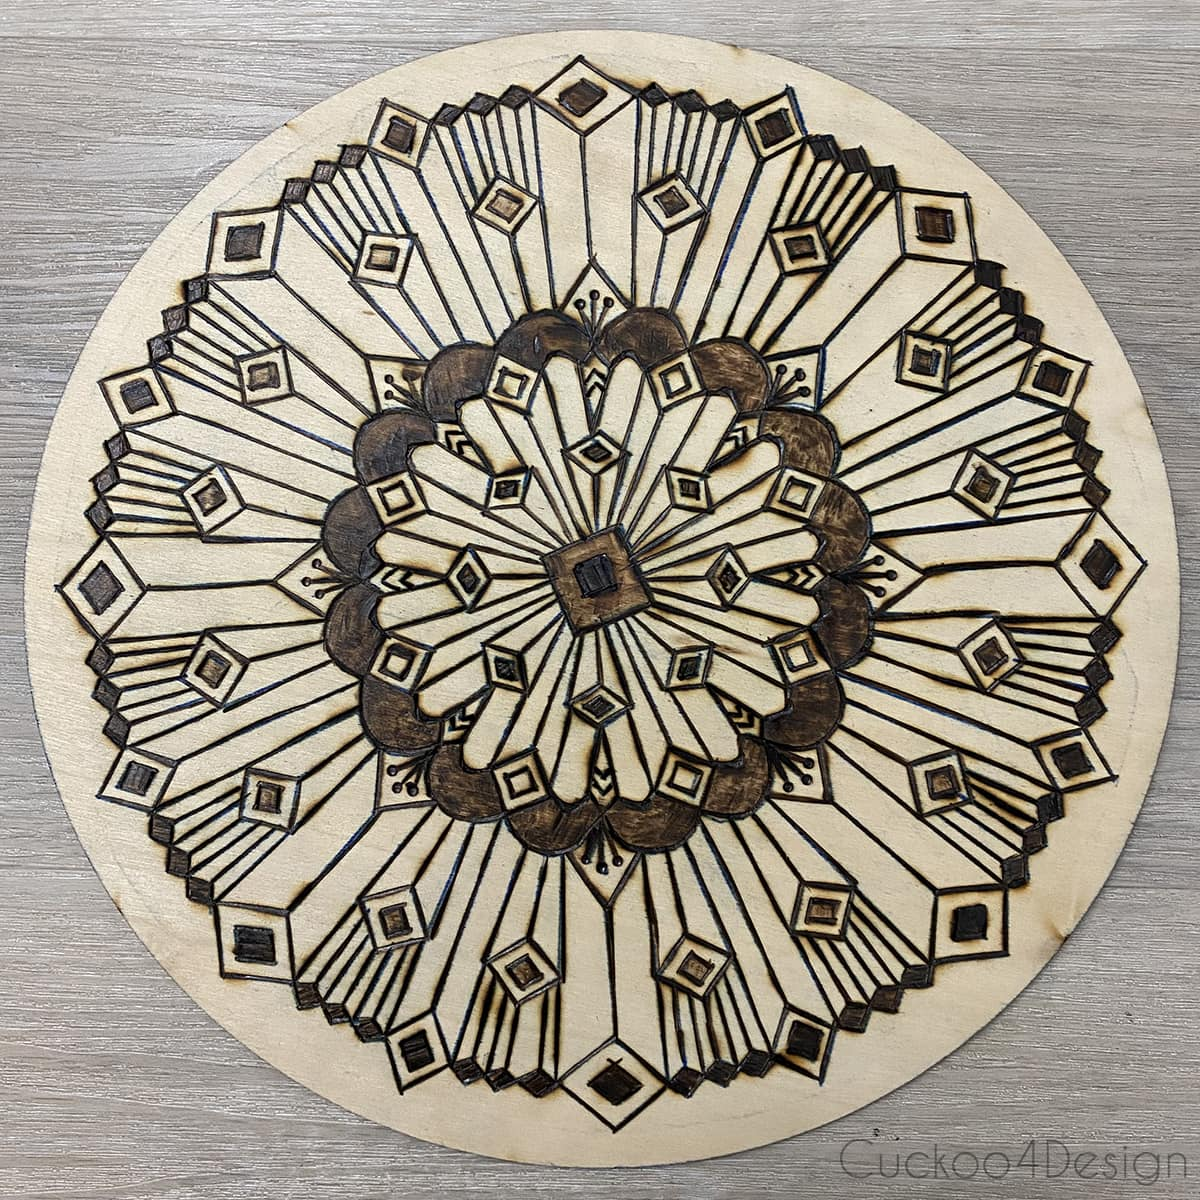 finished wood burned mandala with straight lines and without color